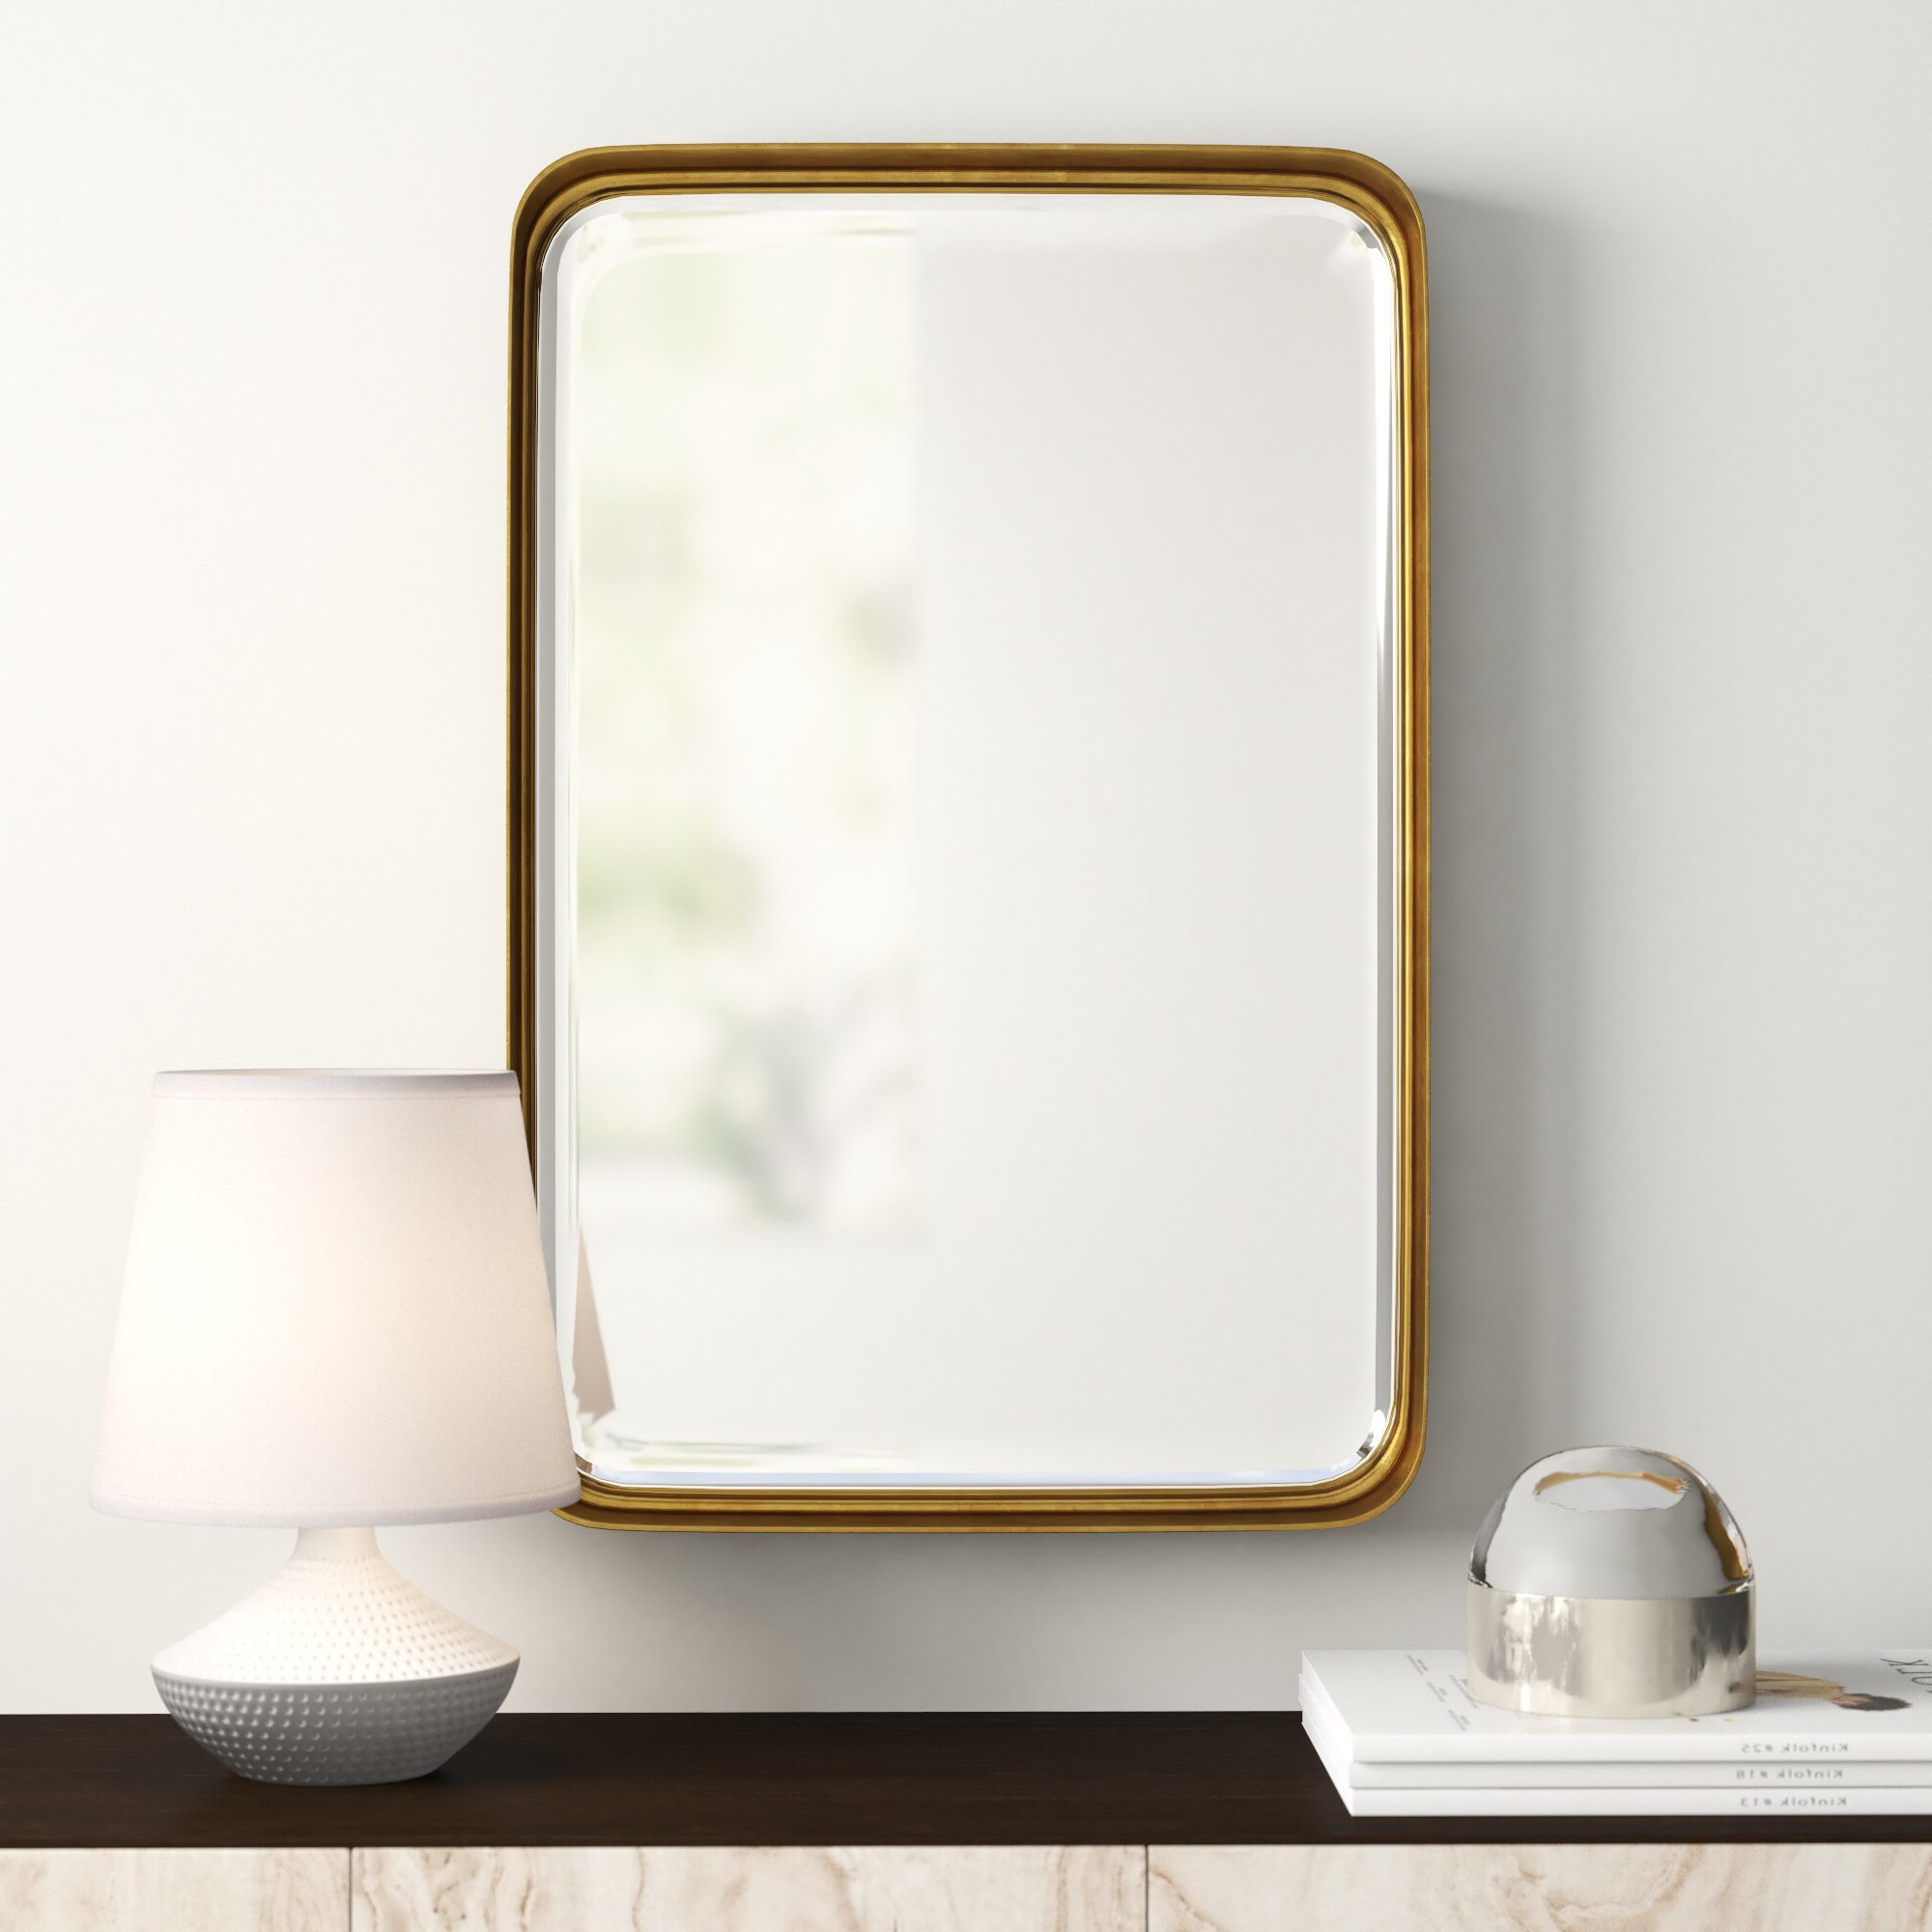 Lugo Rectangle Accent Mirrors Regarding Recent Mercury Row Lugo Rectangle Accent Mirror (Gallery 3 of 20)